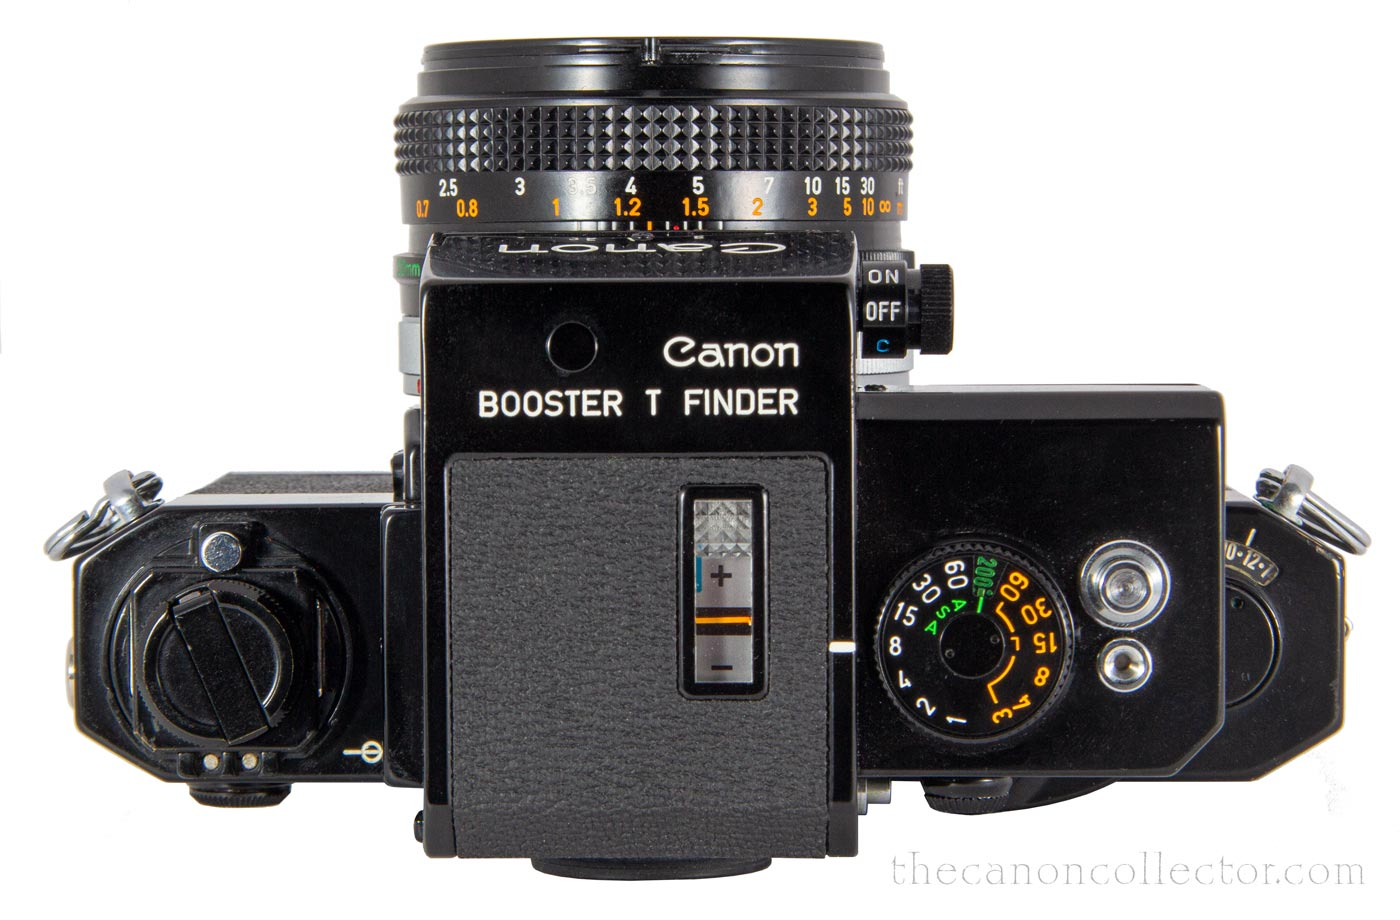 Canon Booster T Finder